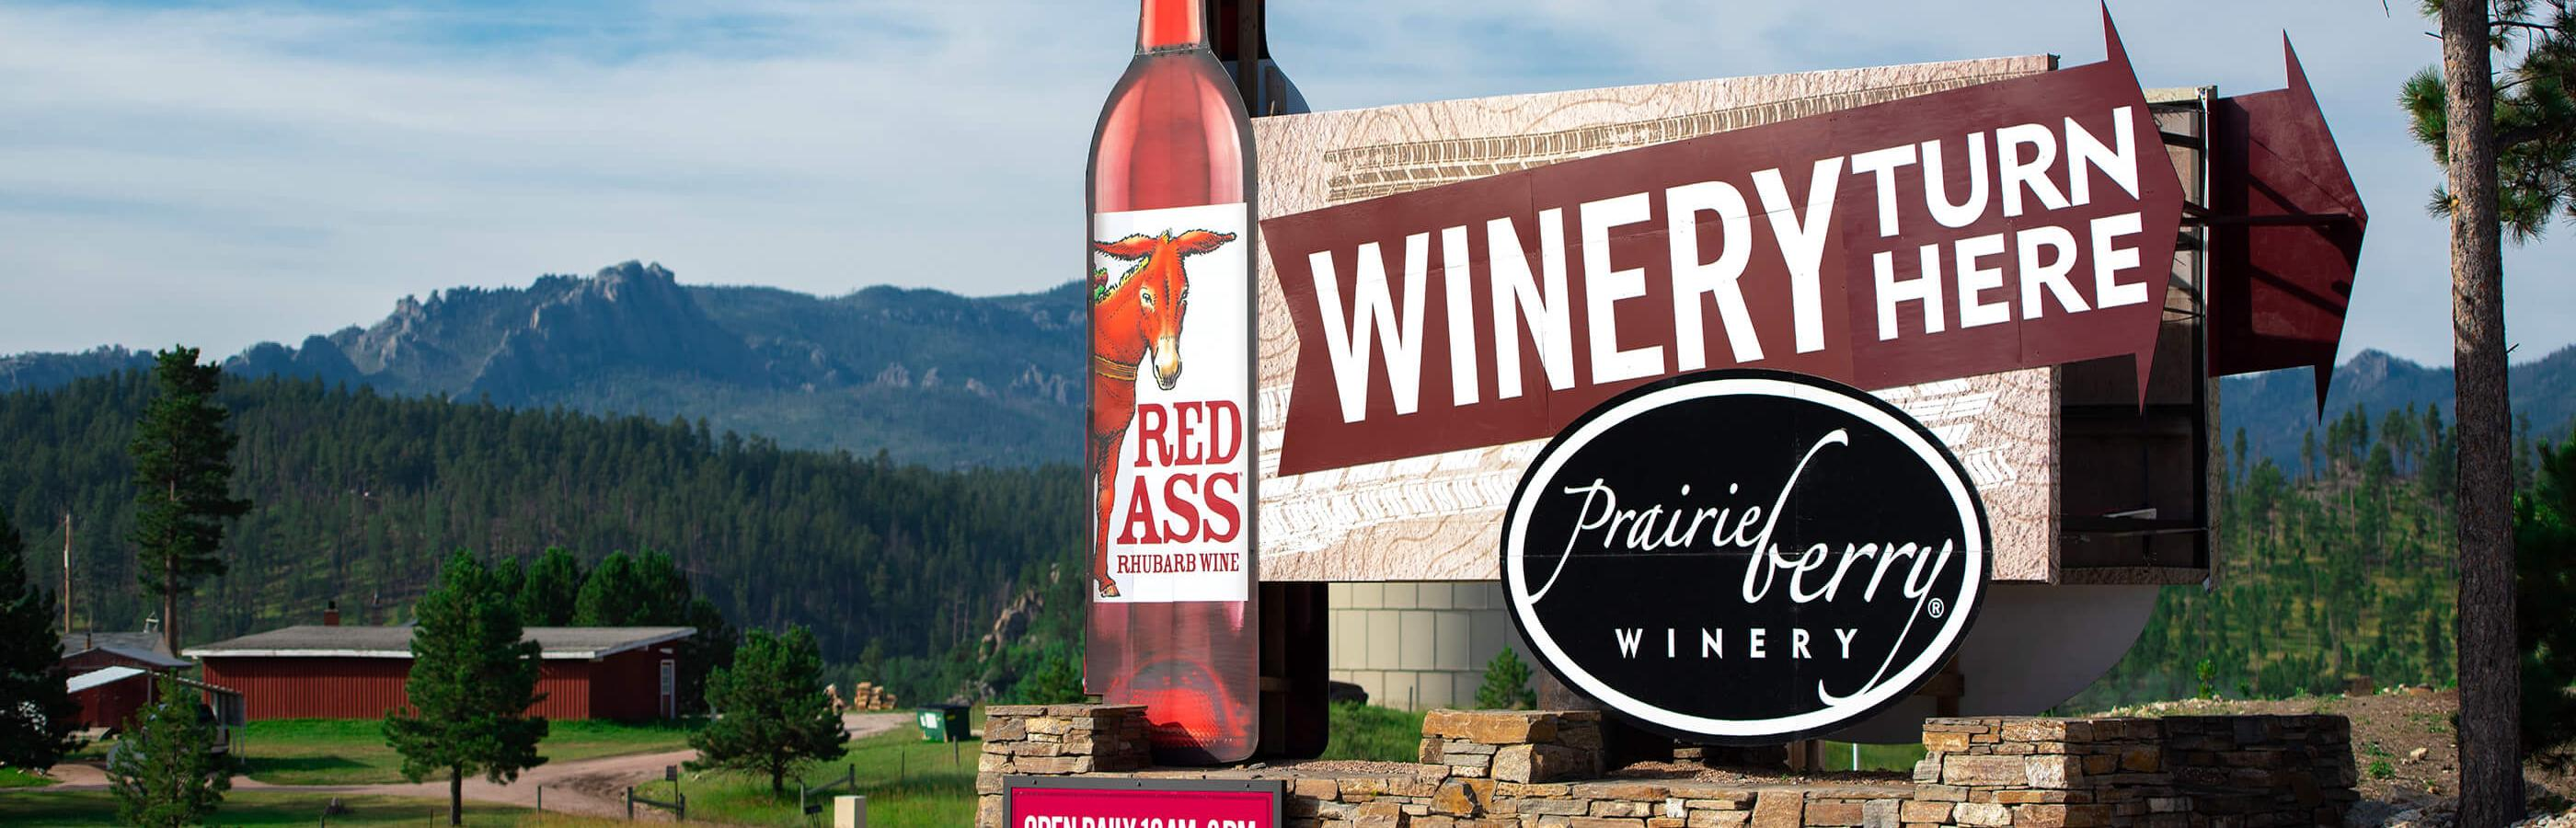 Signage for the Black Hills Prairie Berry Winery